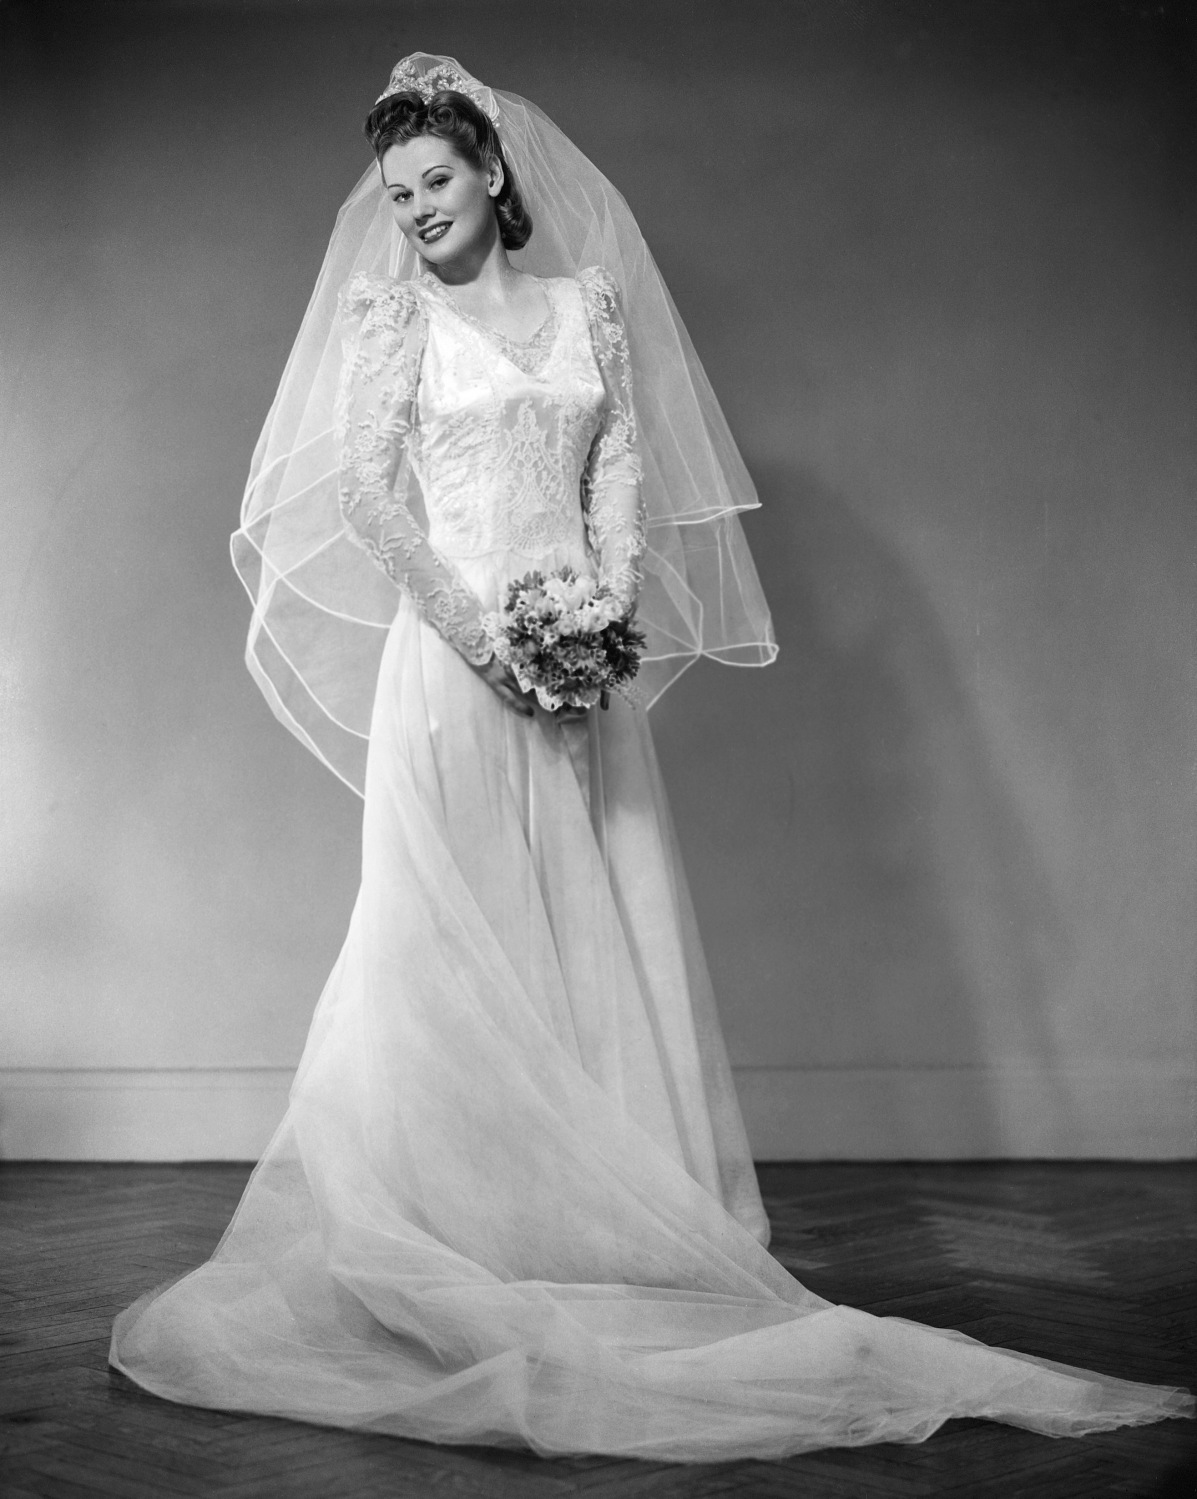 Best Wedding Stores In Tampa Bay For The Vintage Shopper – CBS Tampa